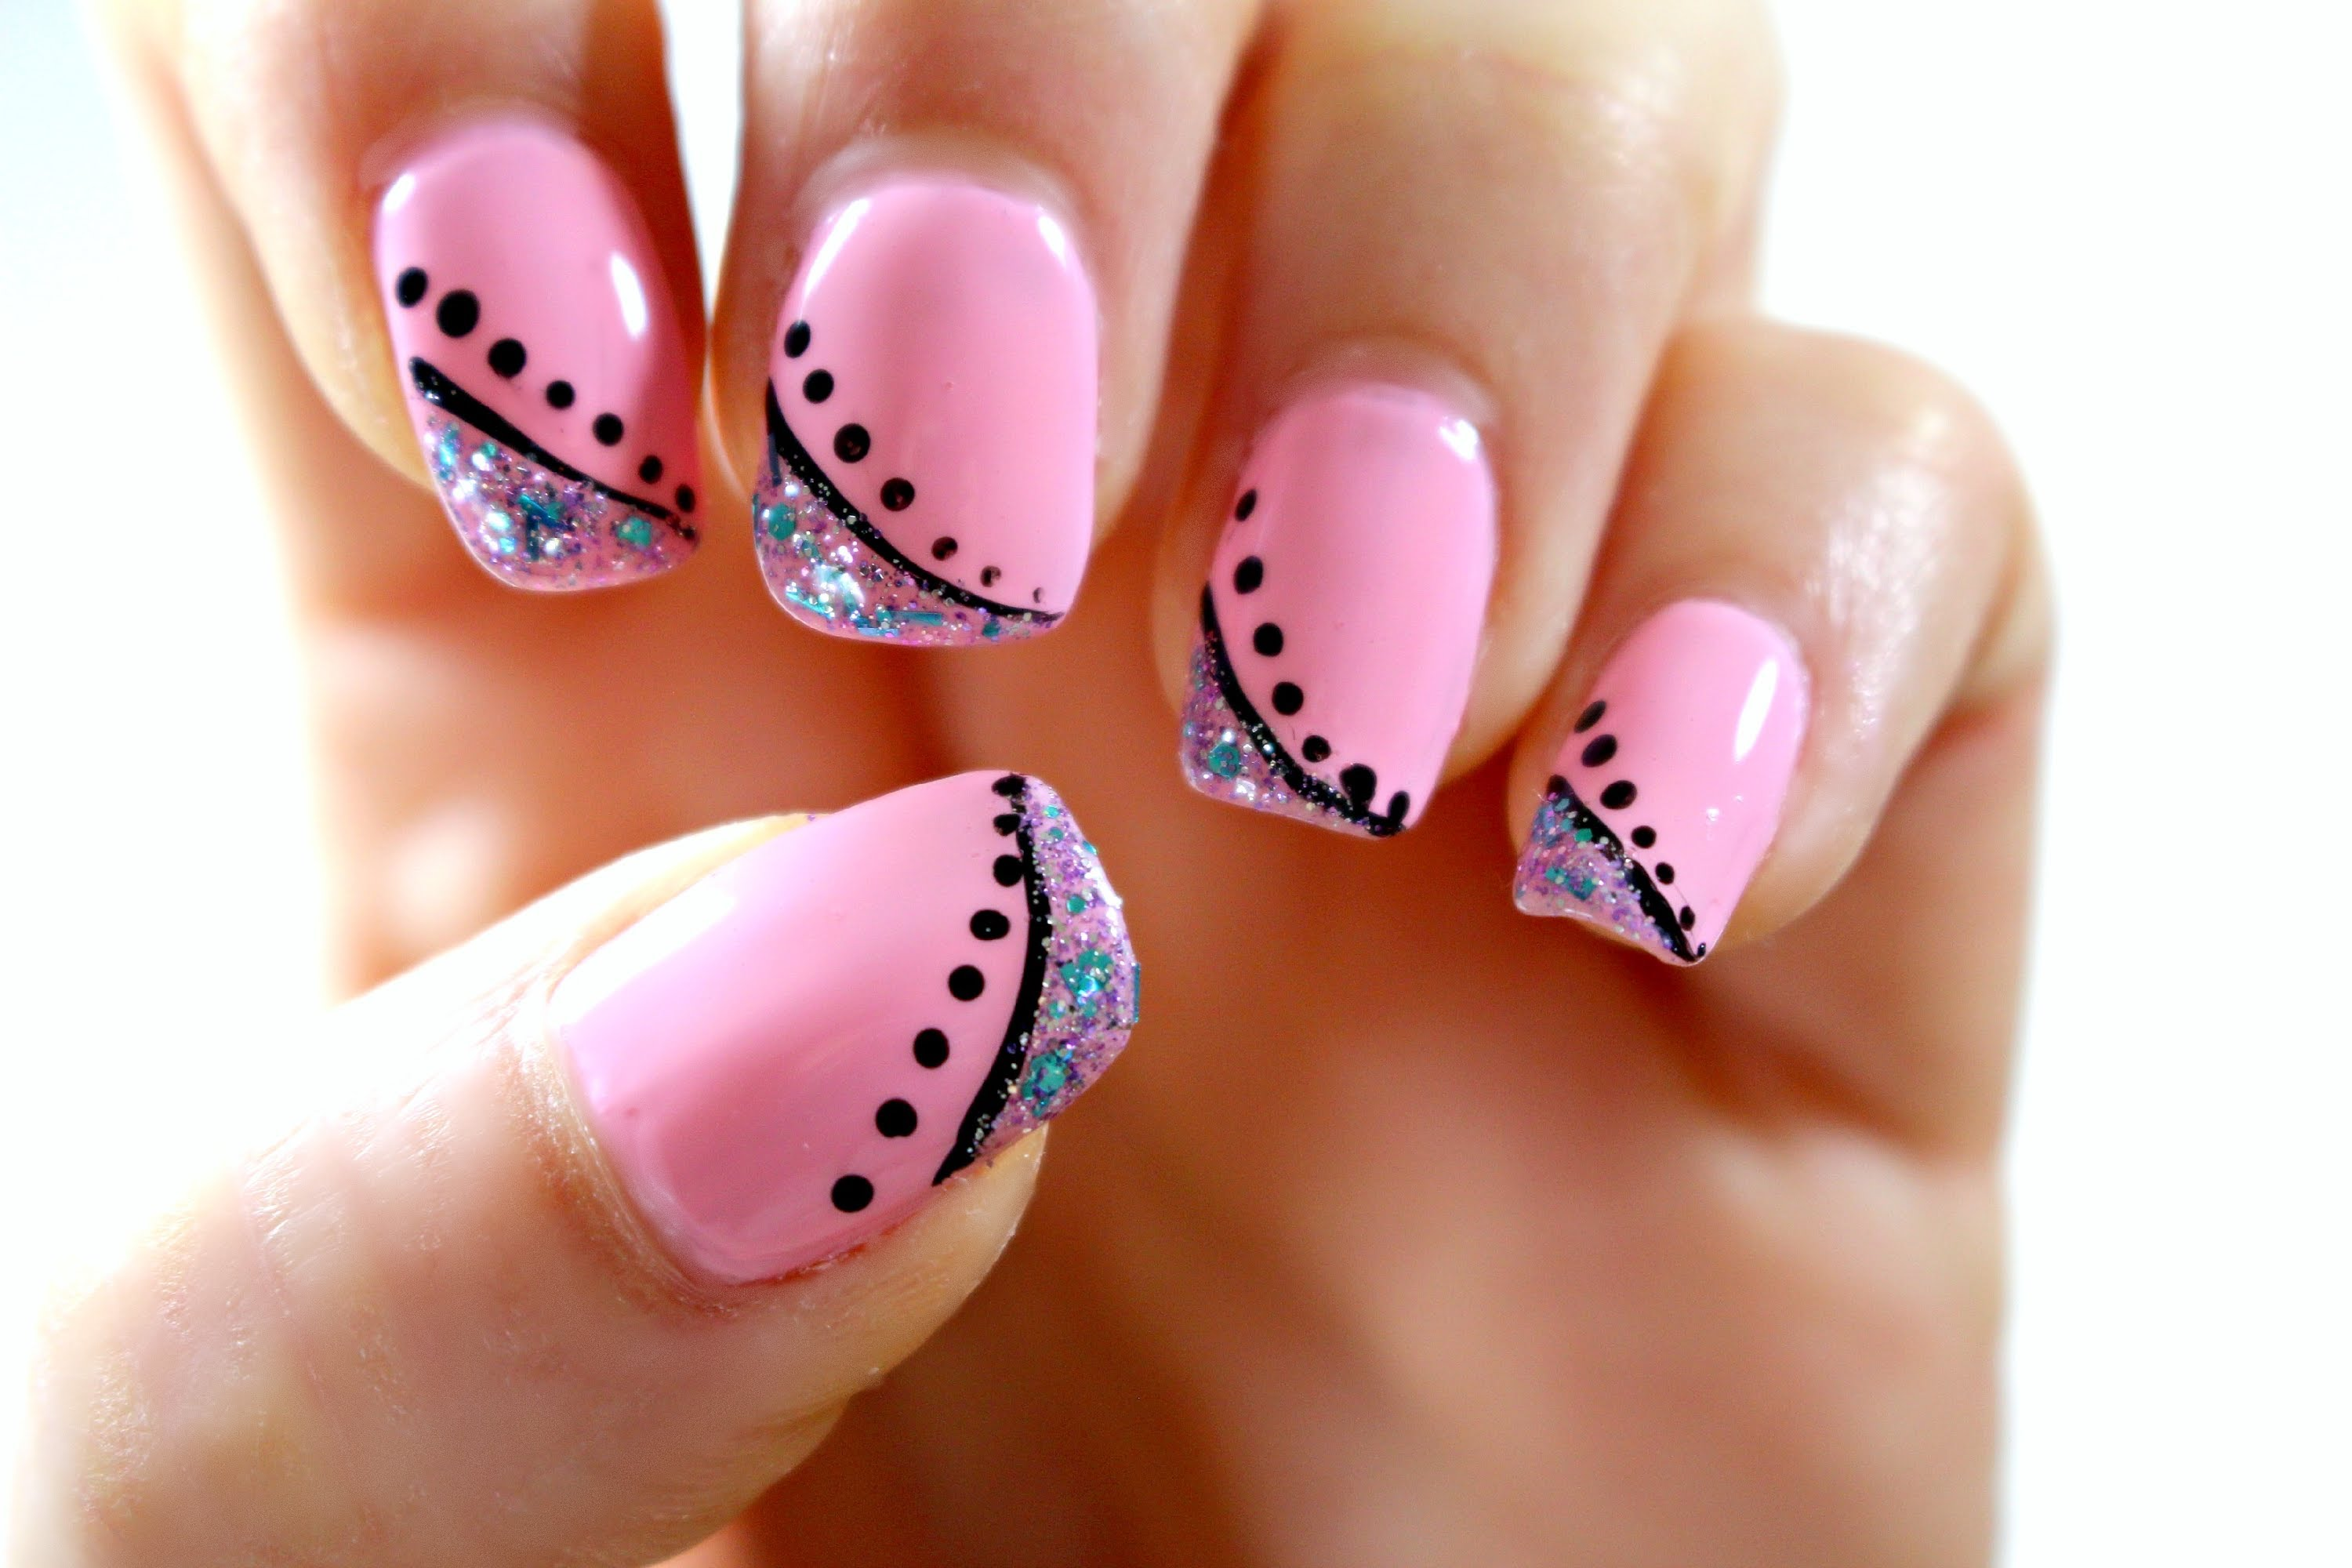 25 Amazing Classy Nail Designs For Short Nails 2015